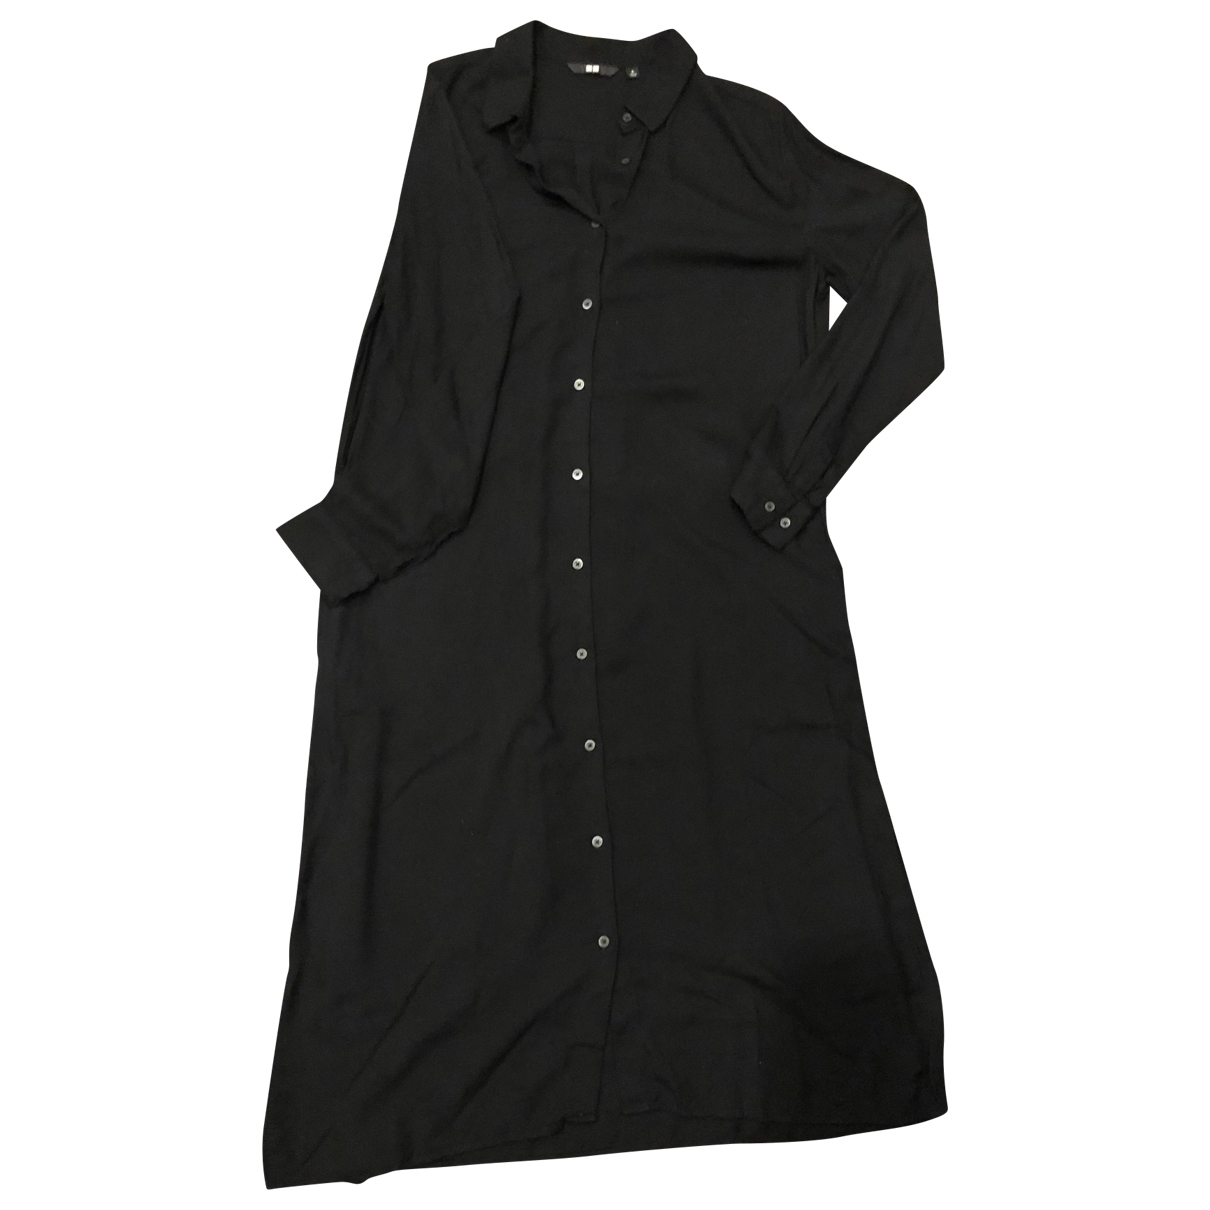 Uniqlo \N Black Cotton dress for Women S International